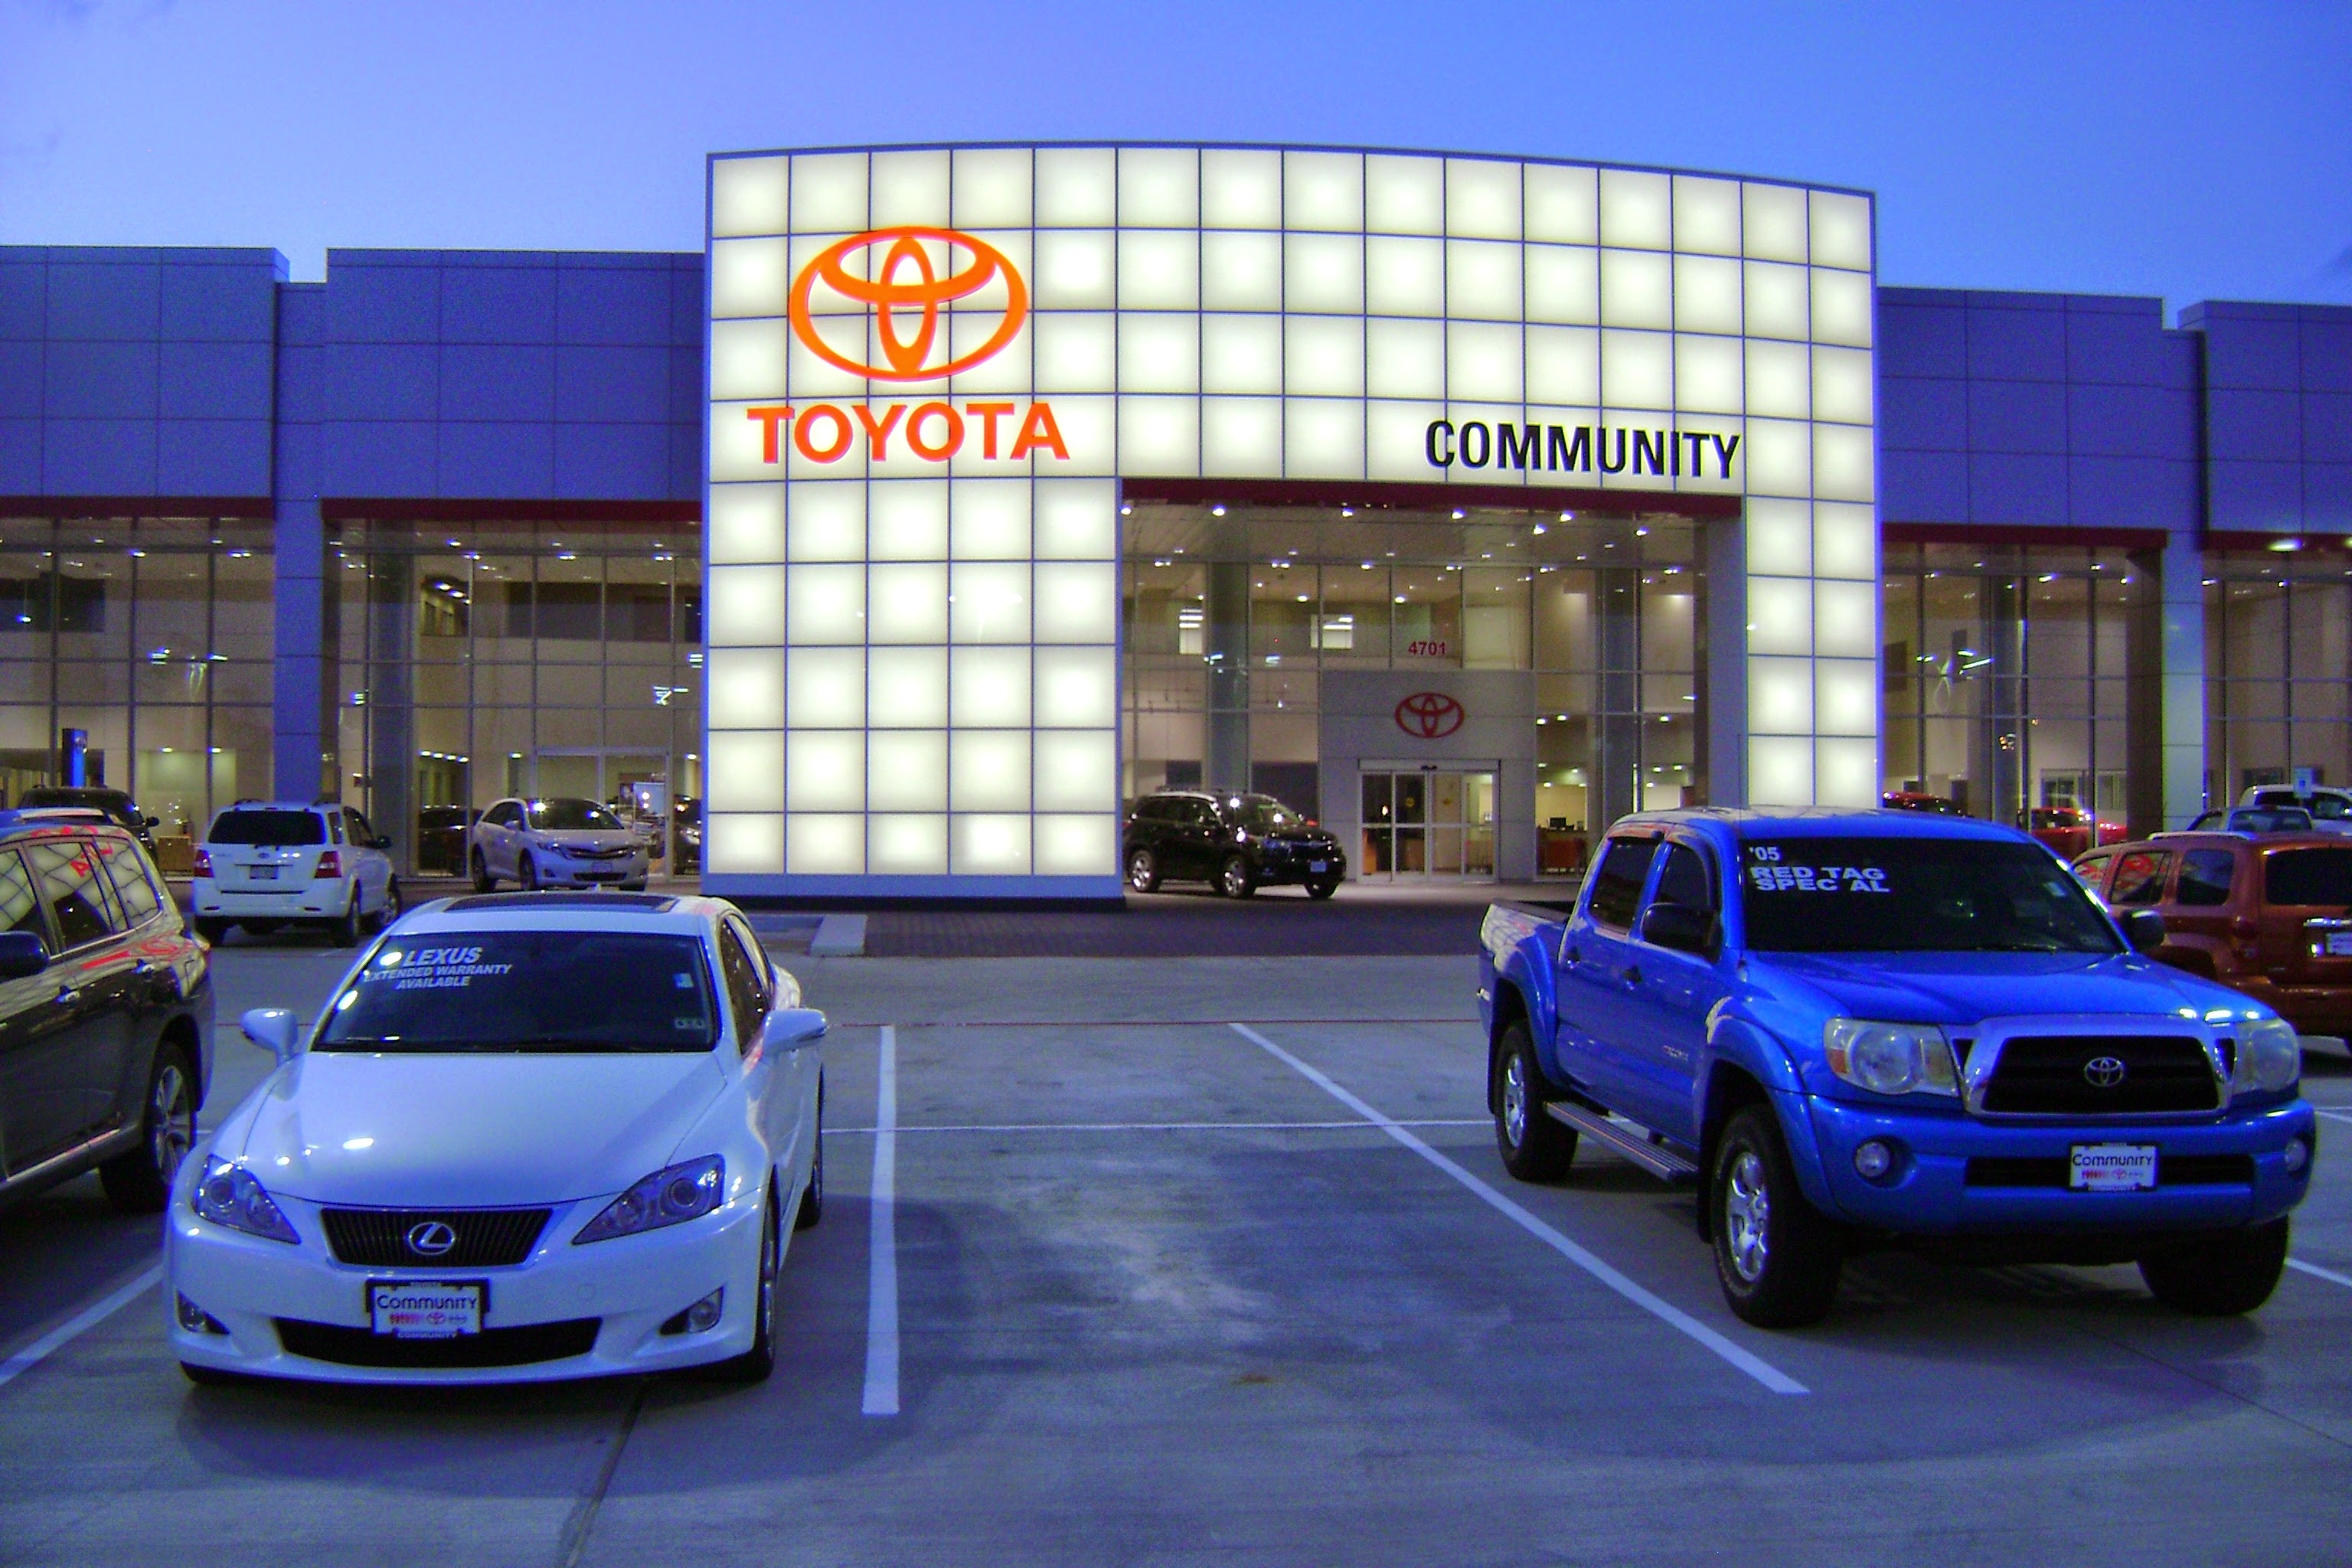 Ron Craft Baytown >> Community Toyota, Baytown Texas (TX) - LocalDatabase.com